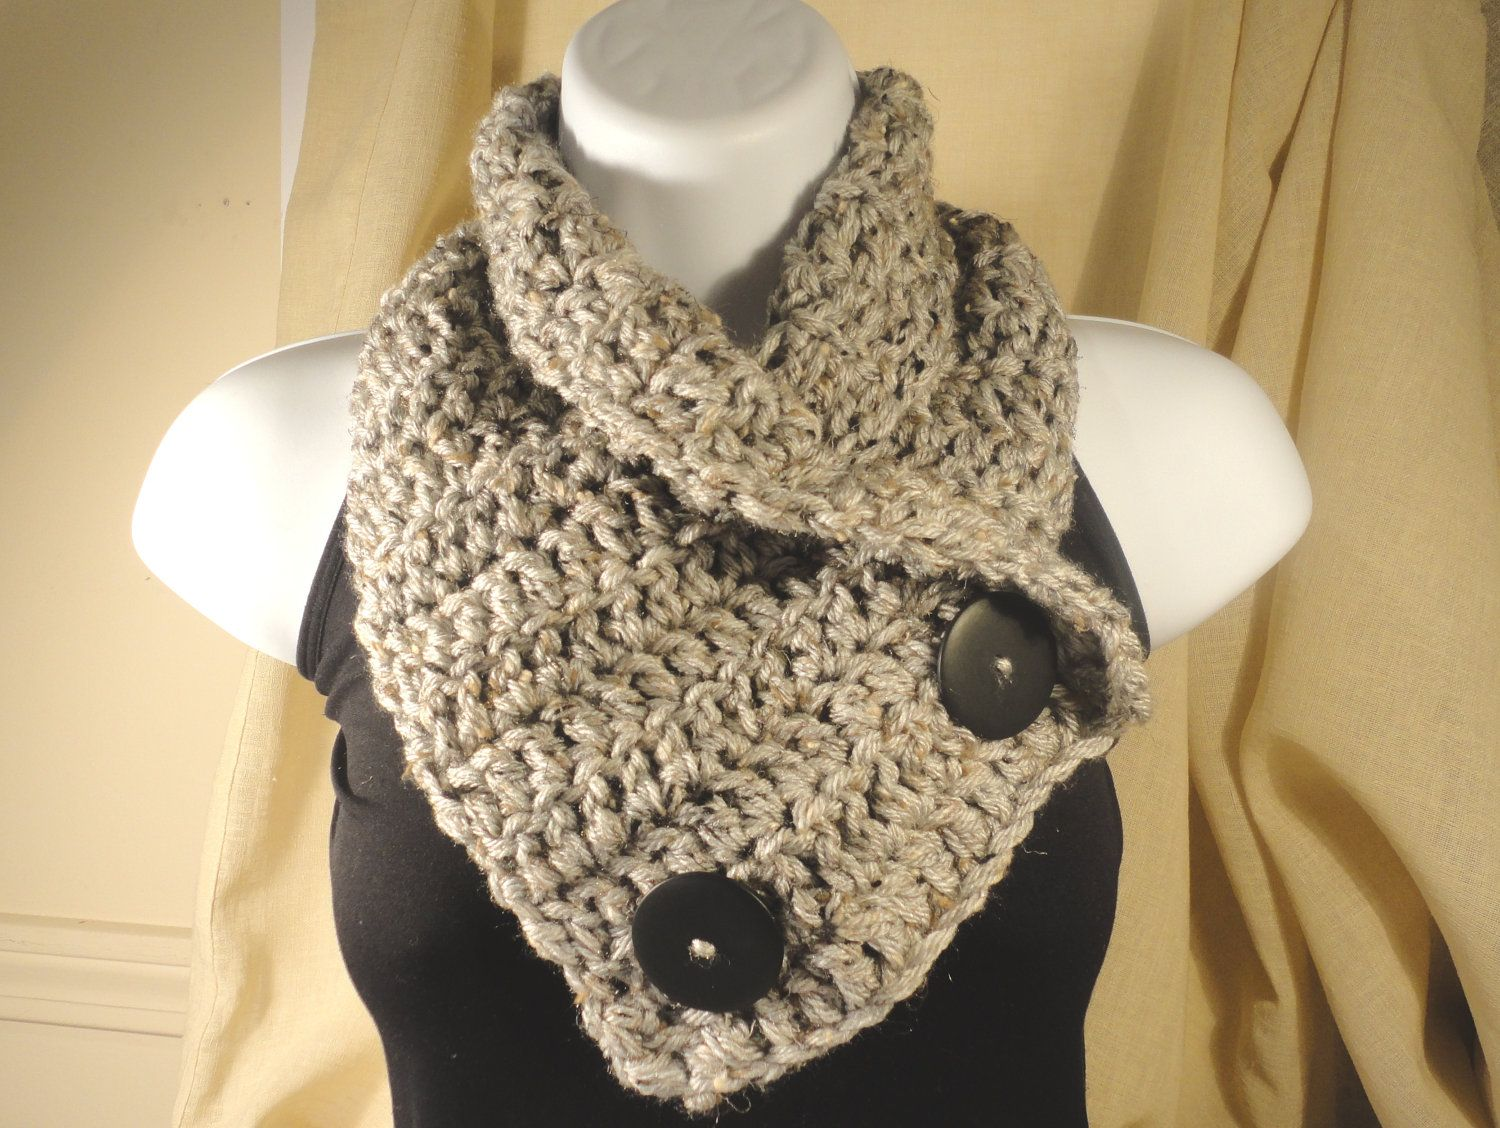 Cowl scarf patterns free cowl neck scarf crochet pattern http cowl scarf patterns free cowl neck scarf crochet pattern httpcrochetascarf bankloansurffo Gallery